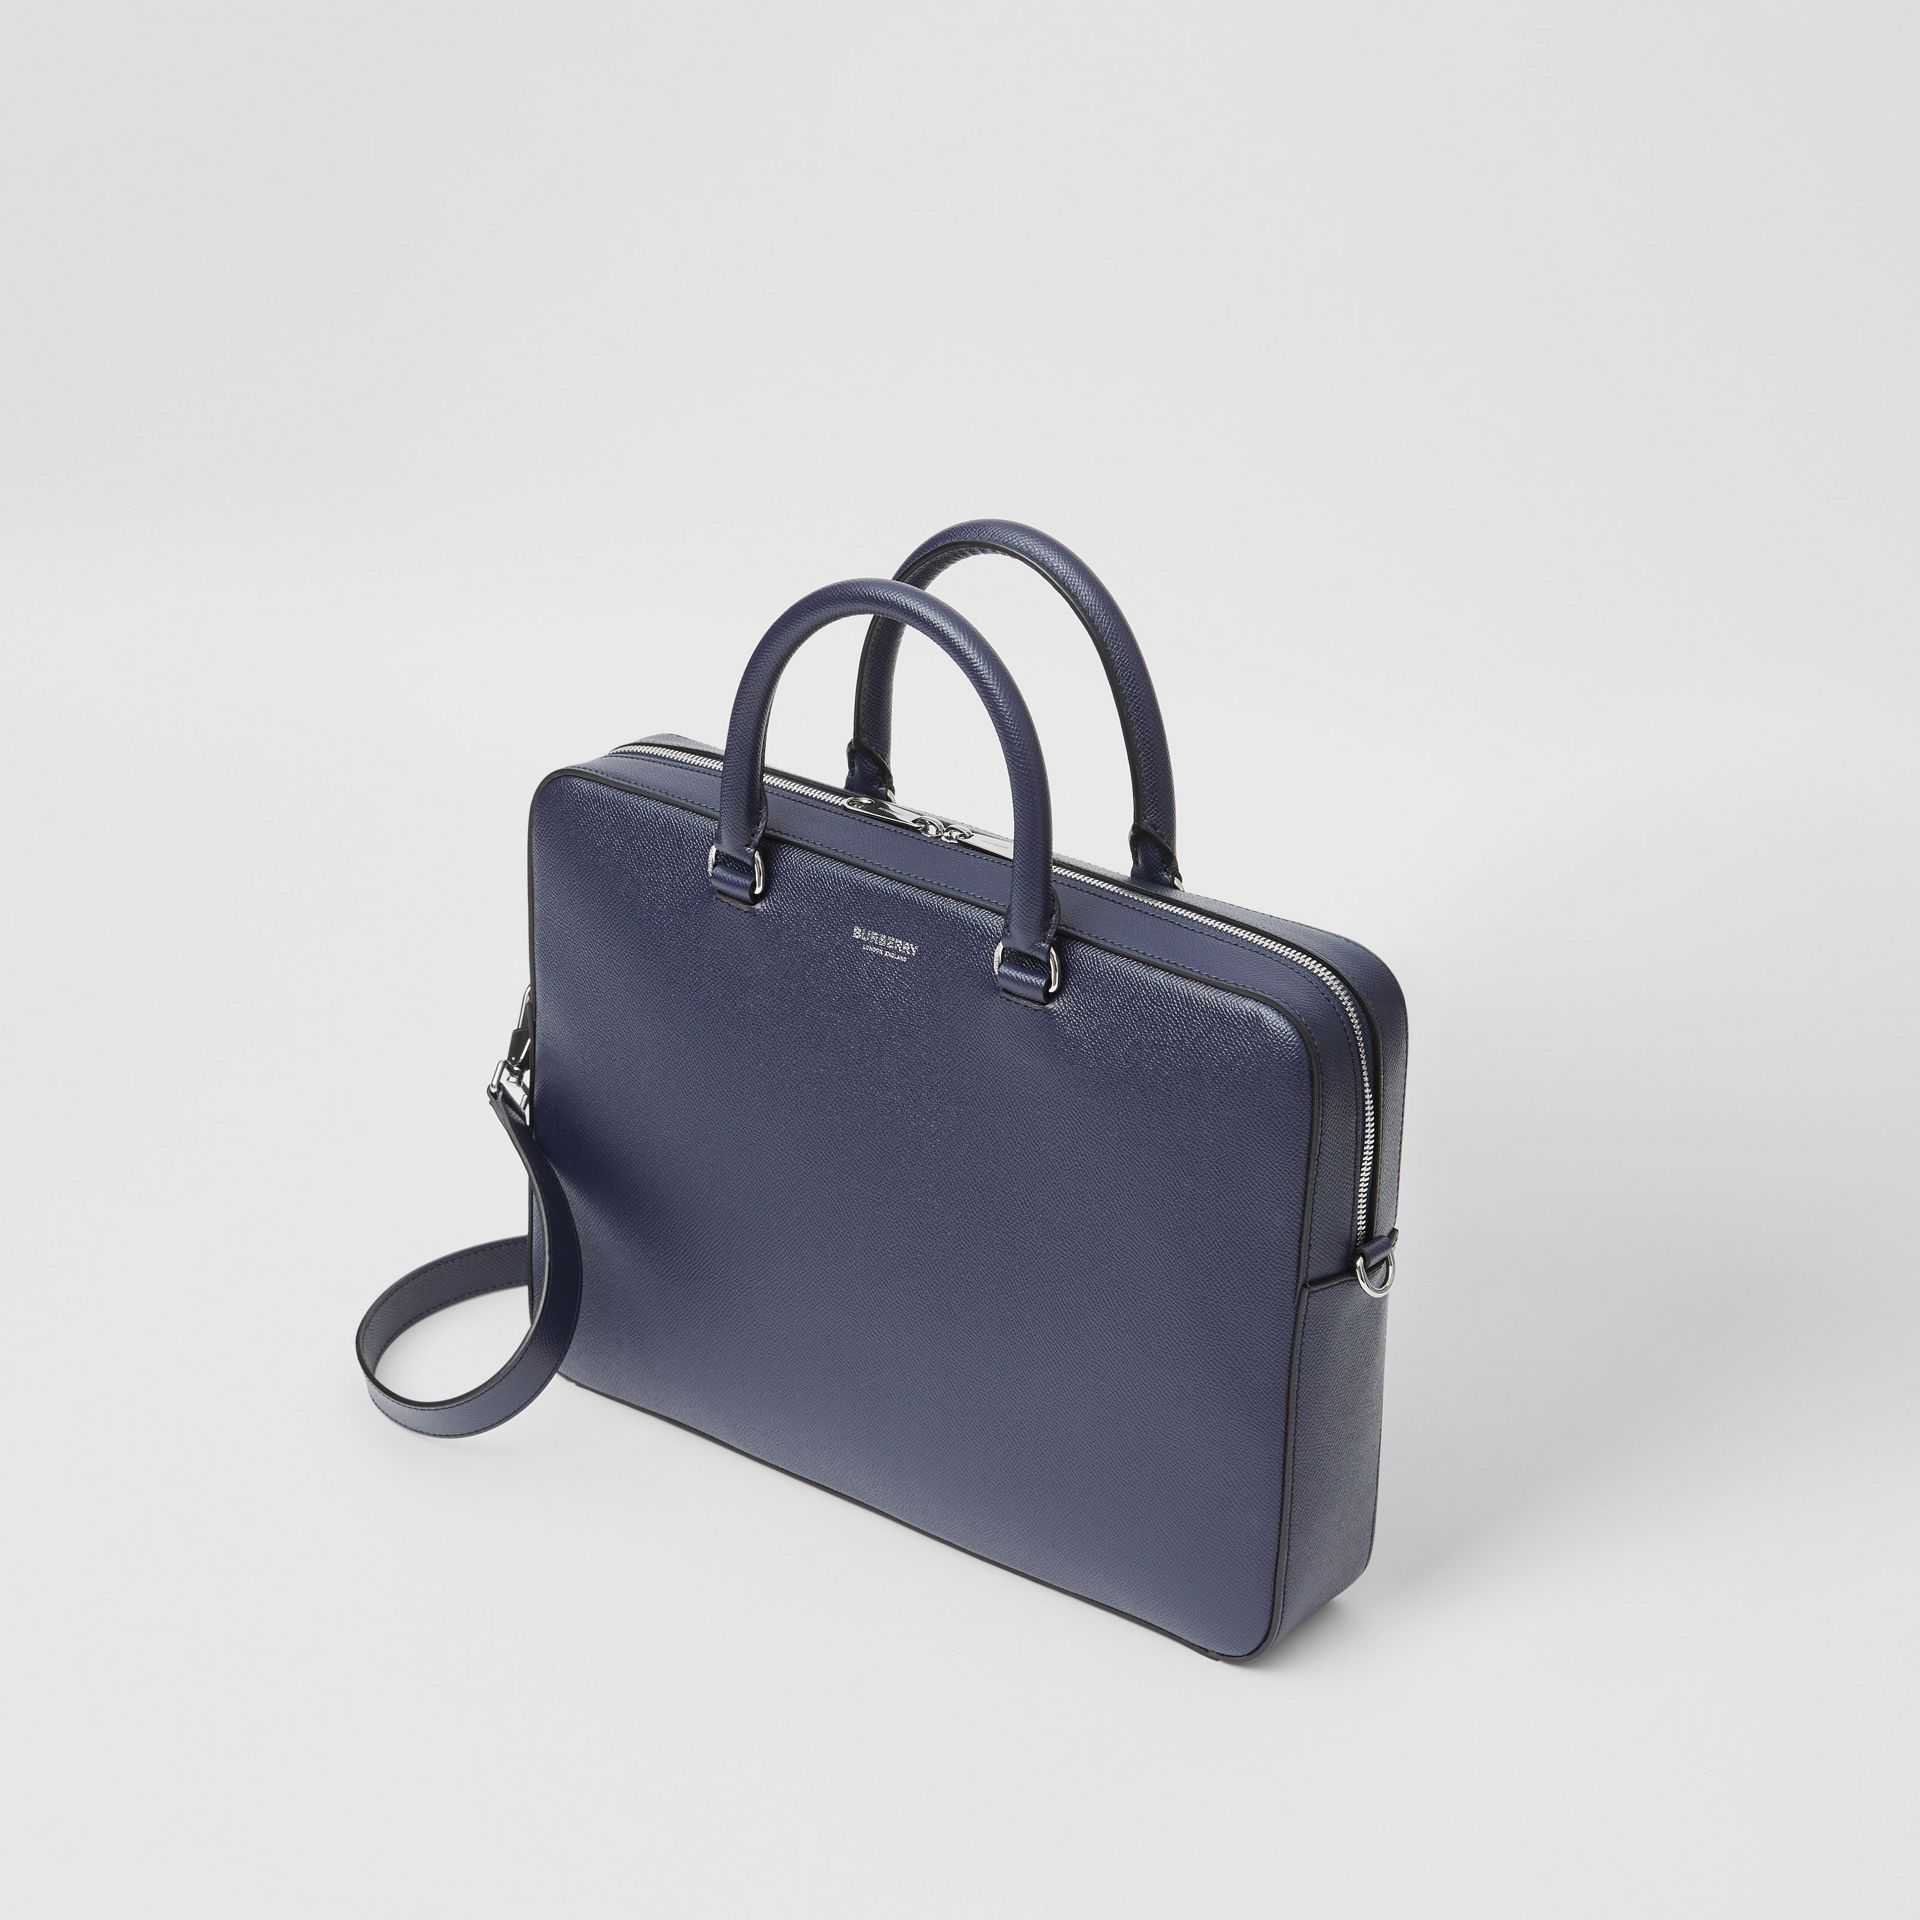 Attaché-case en cuir grainé (Bleu Régence) - Homme | Burberry - photo de la galerie 3